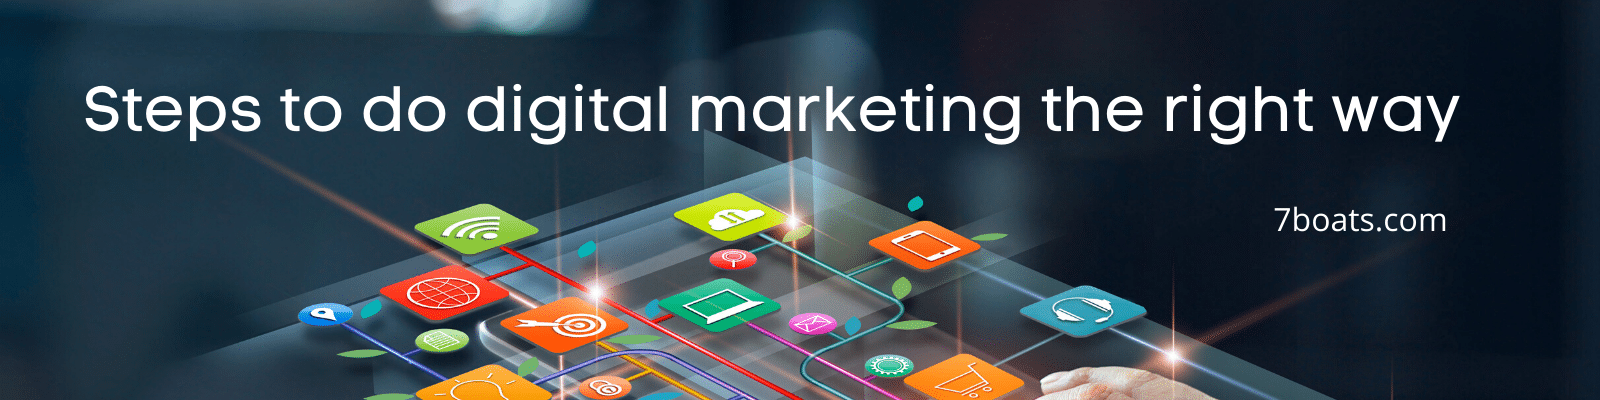 How to do digital marketing the right way? - The steps in digital marketing